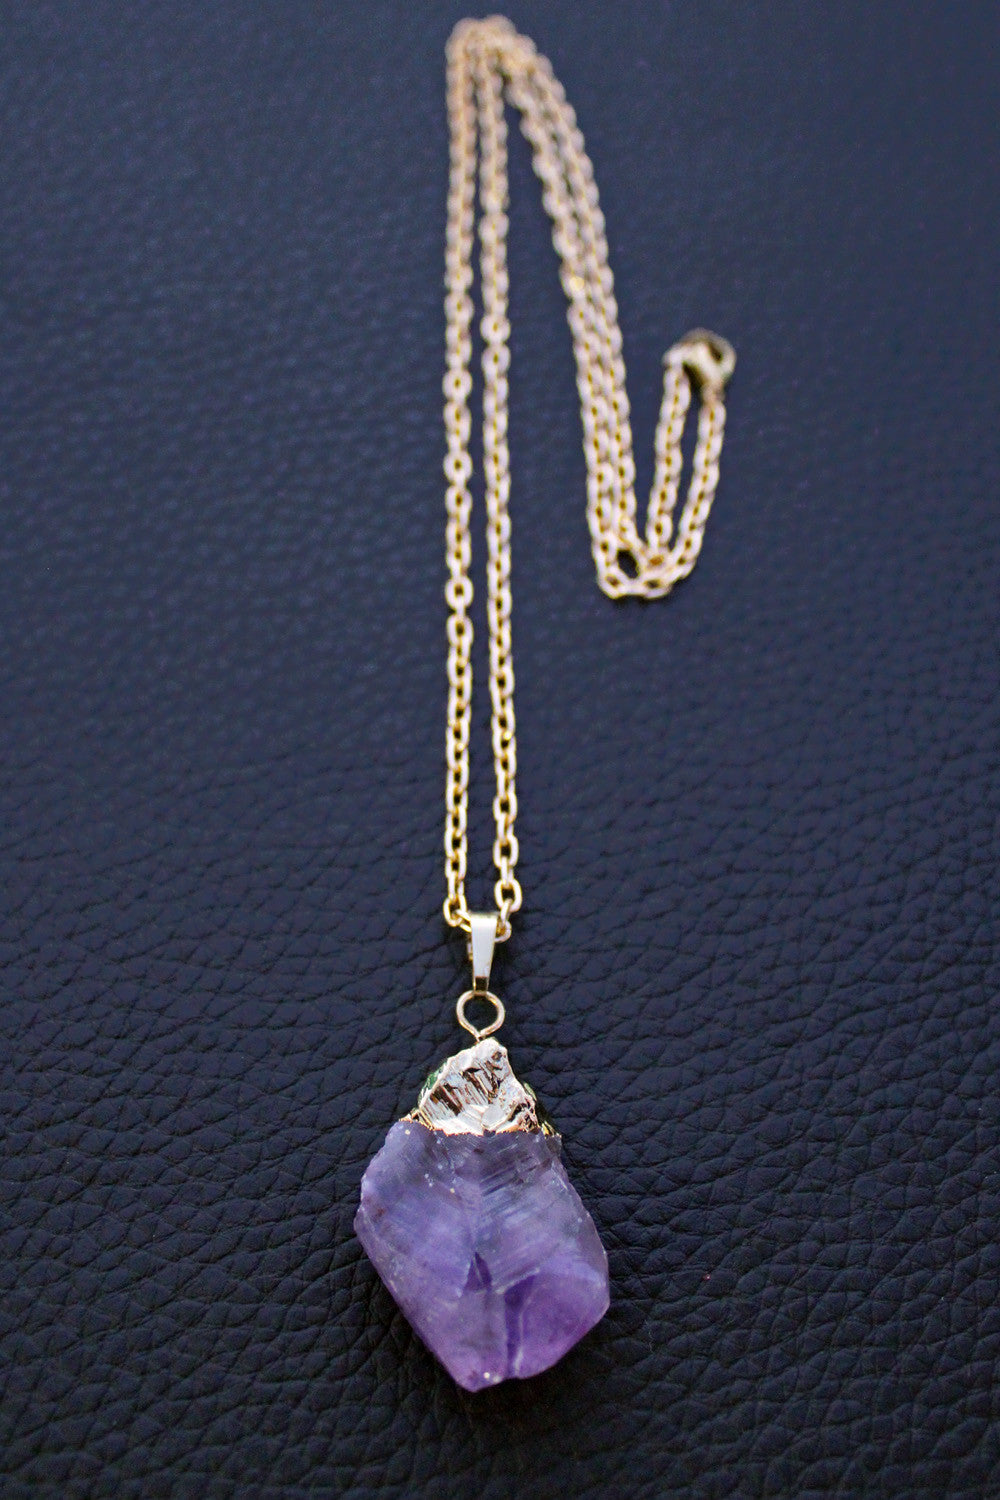 crystal rough pendant necklace druzy cluster amethyst raw